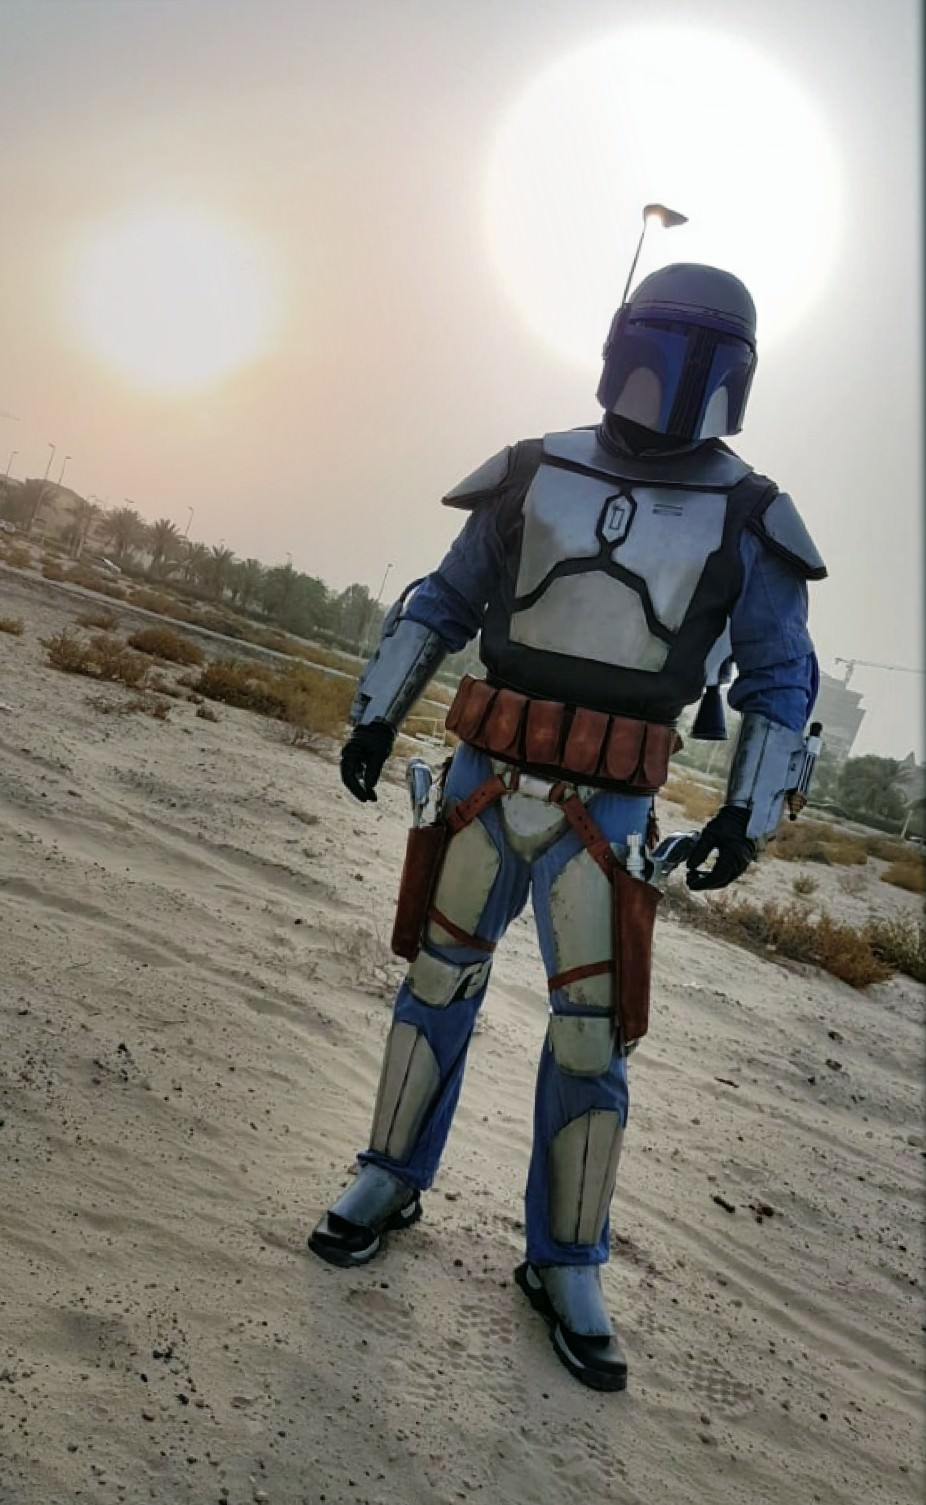 My cleared Jango Fett costume with 501st Legion